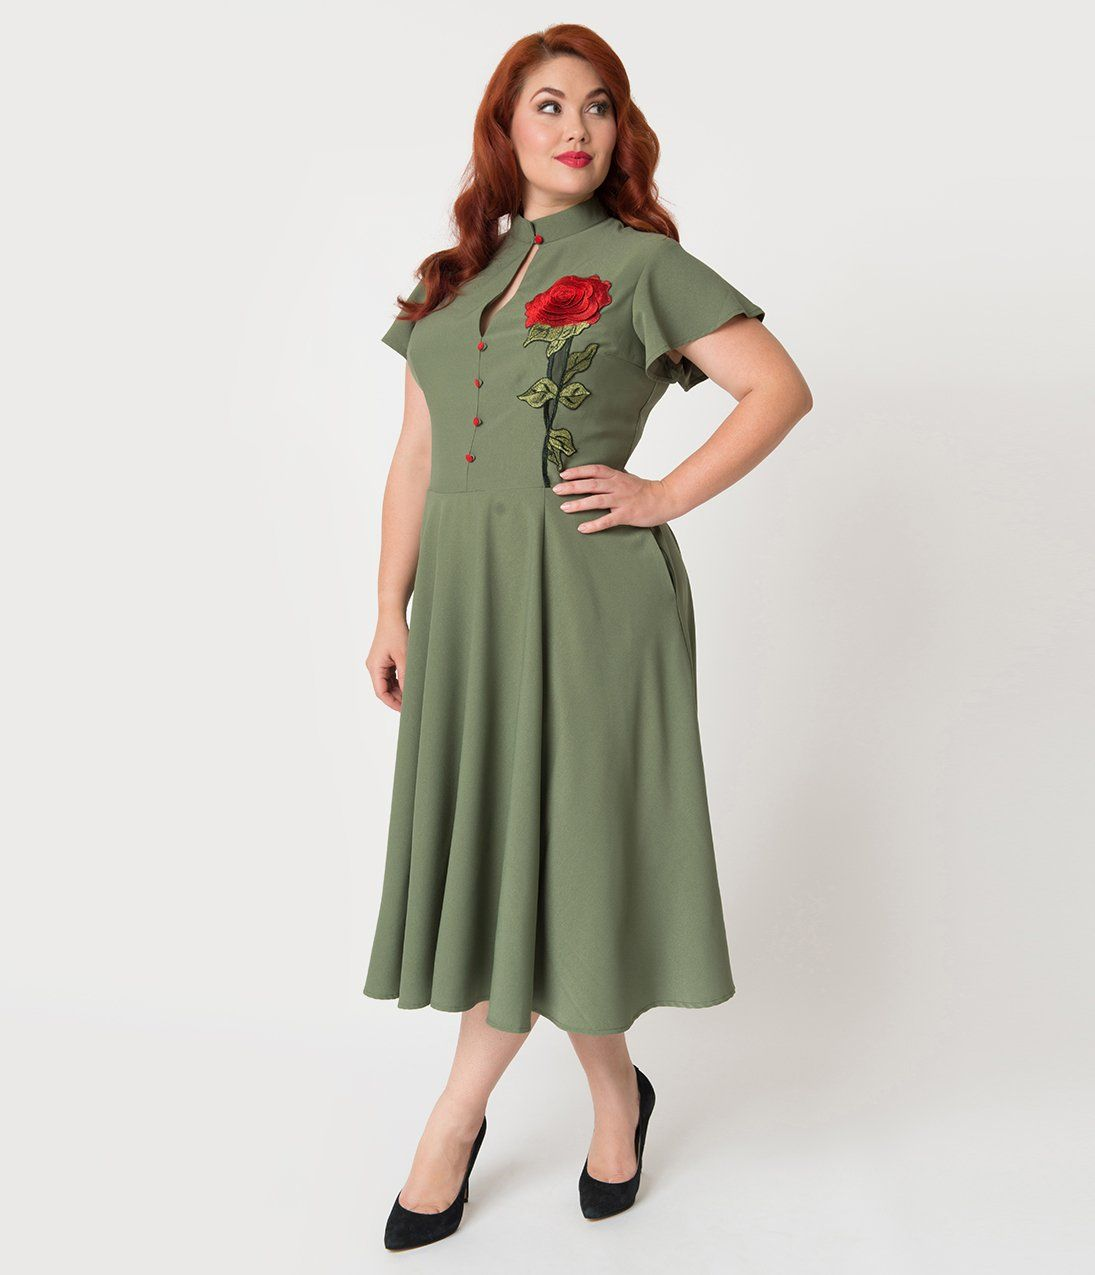 S plus size dresses clothing retro s and s